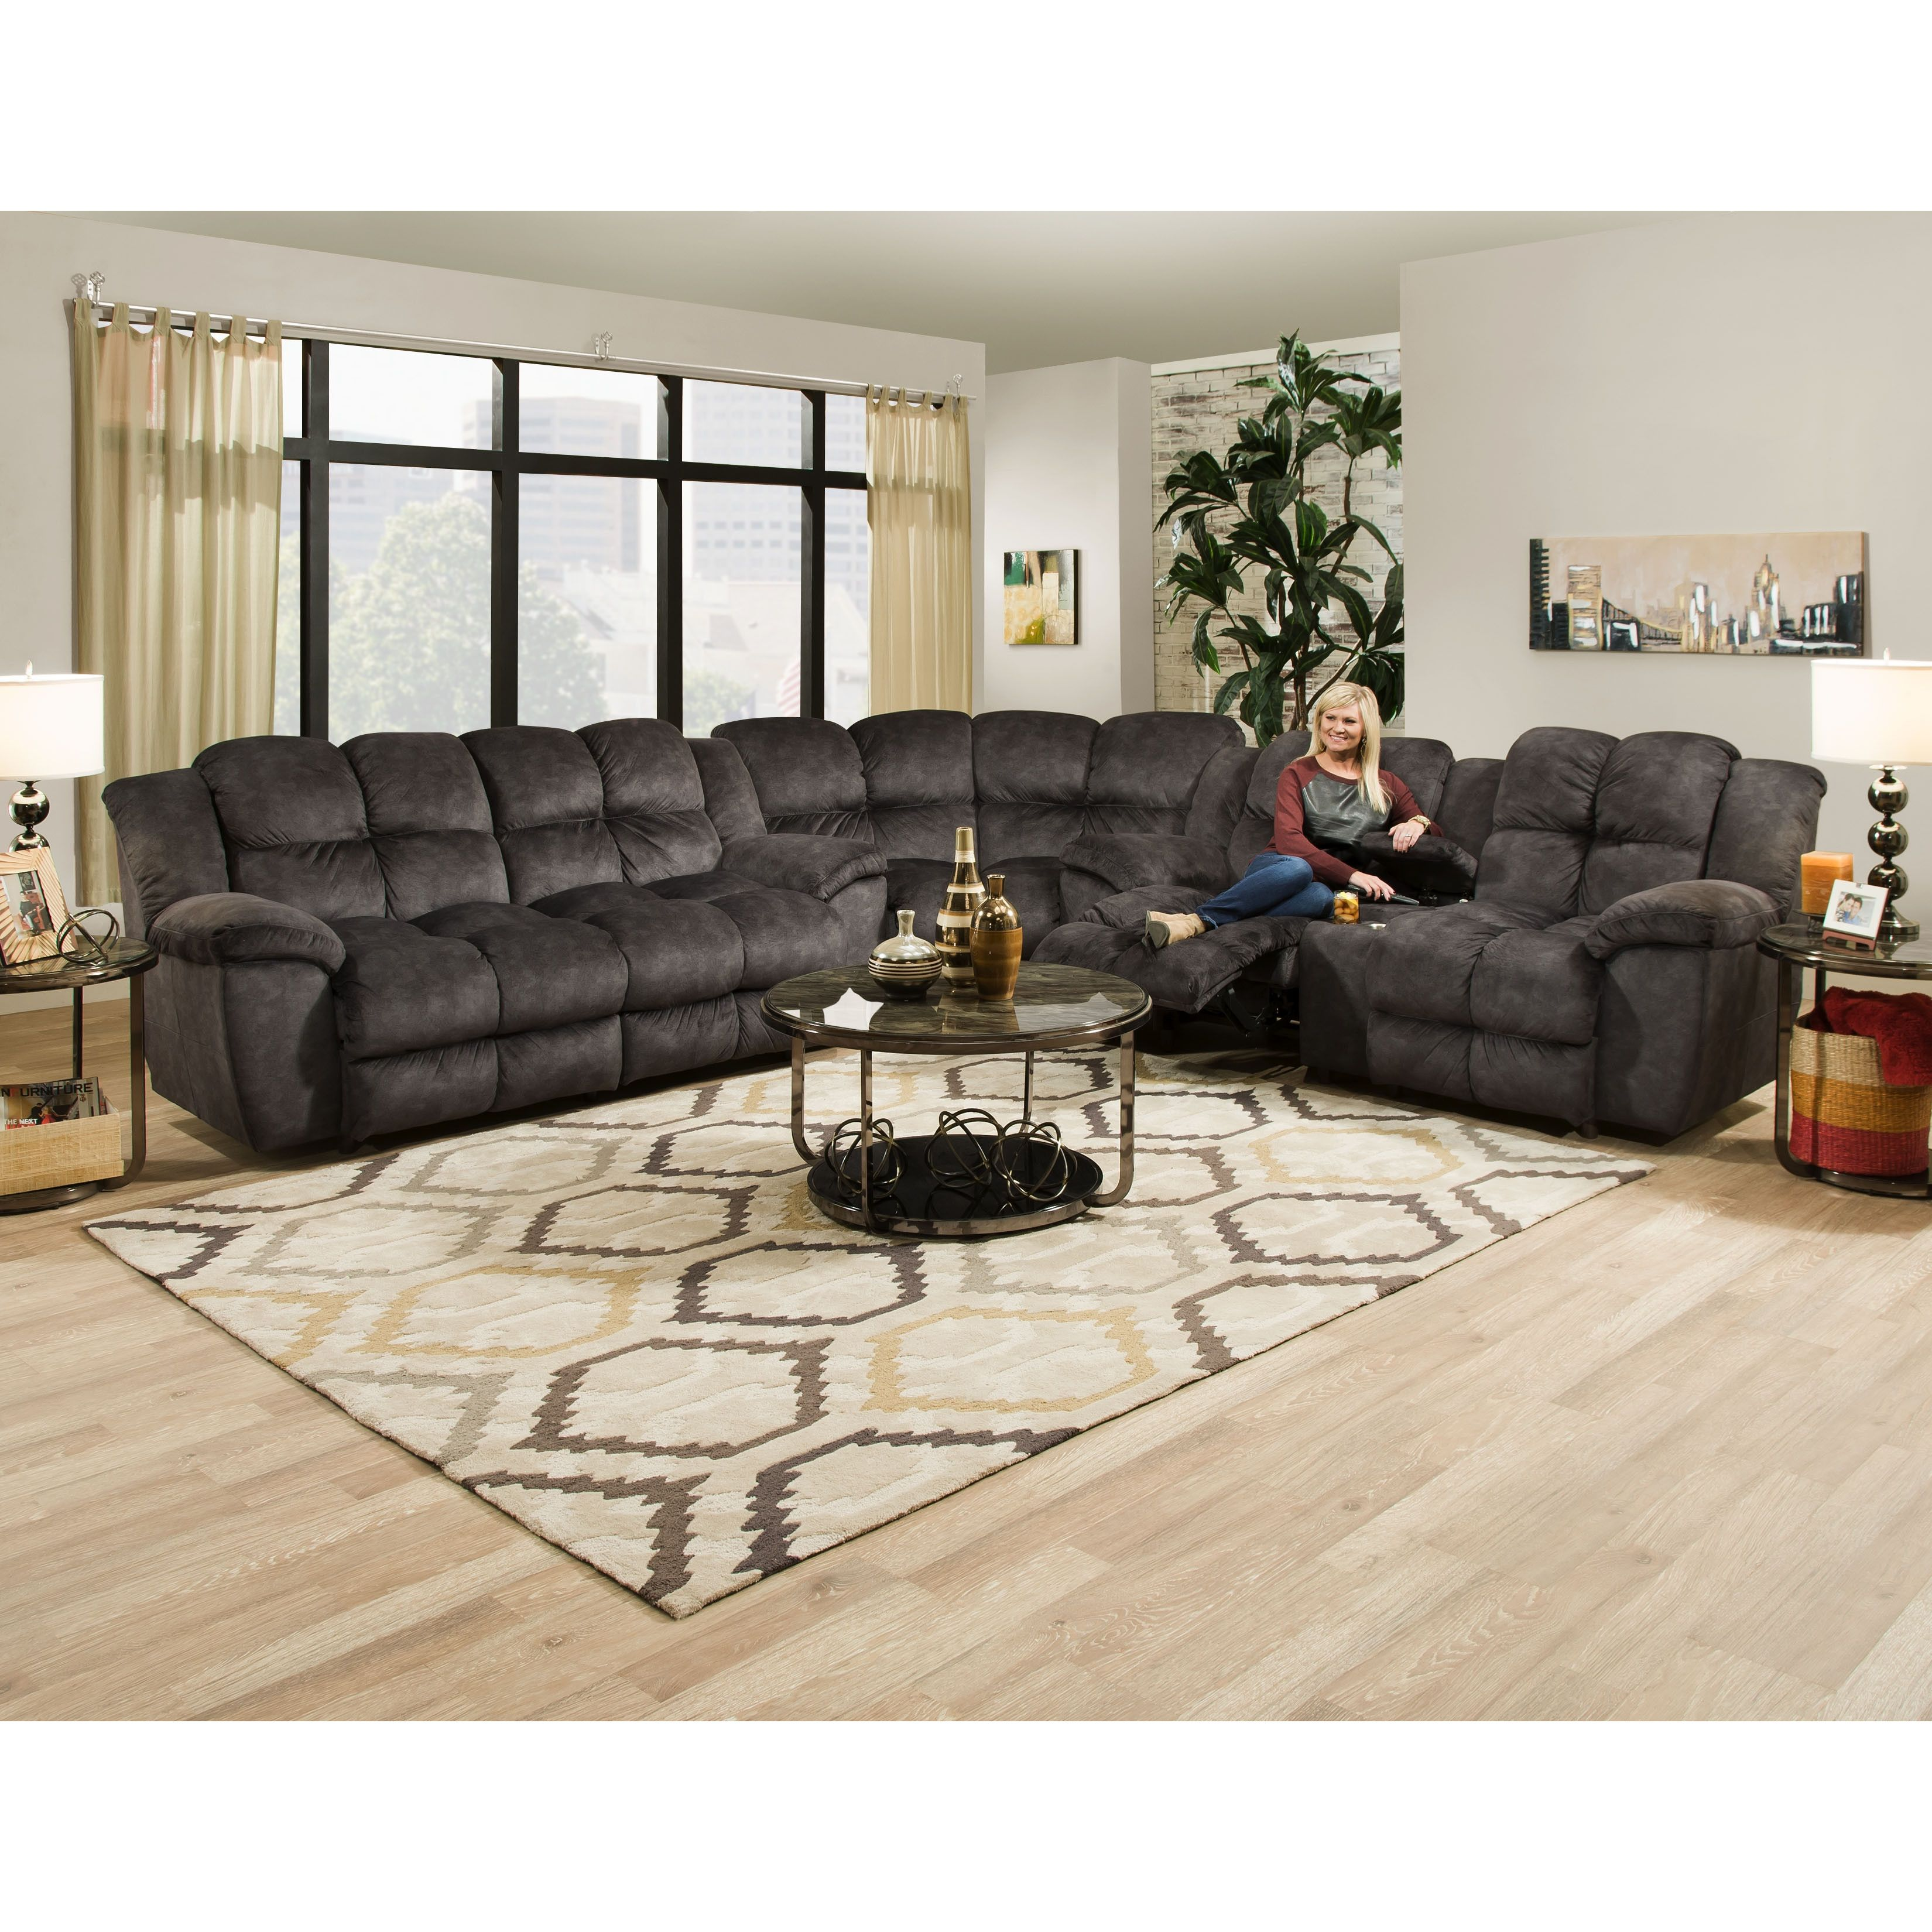 Awesome Awesome Sectional Sofas With Cup Holders 97 For Your Home  Decorating Ideas With Sectional Sofas